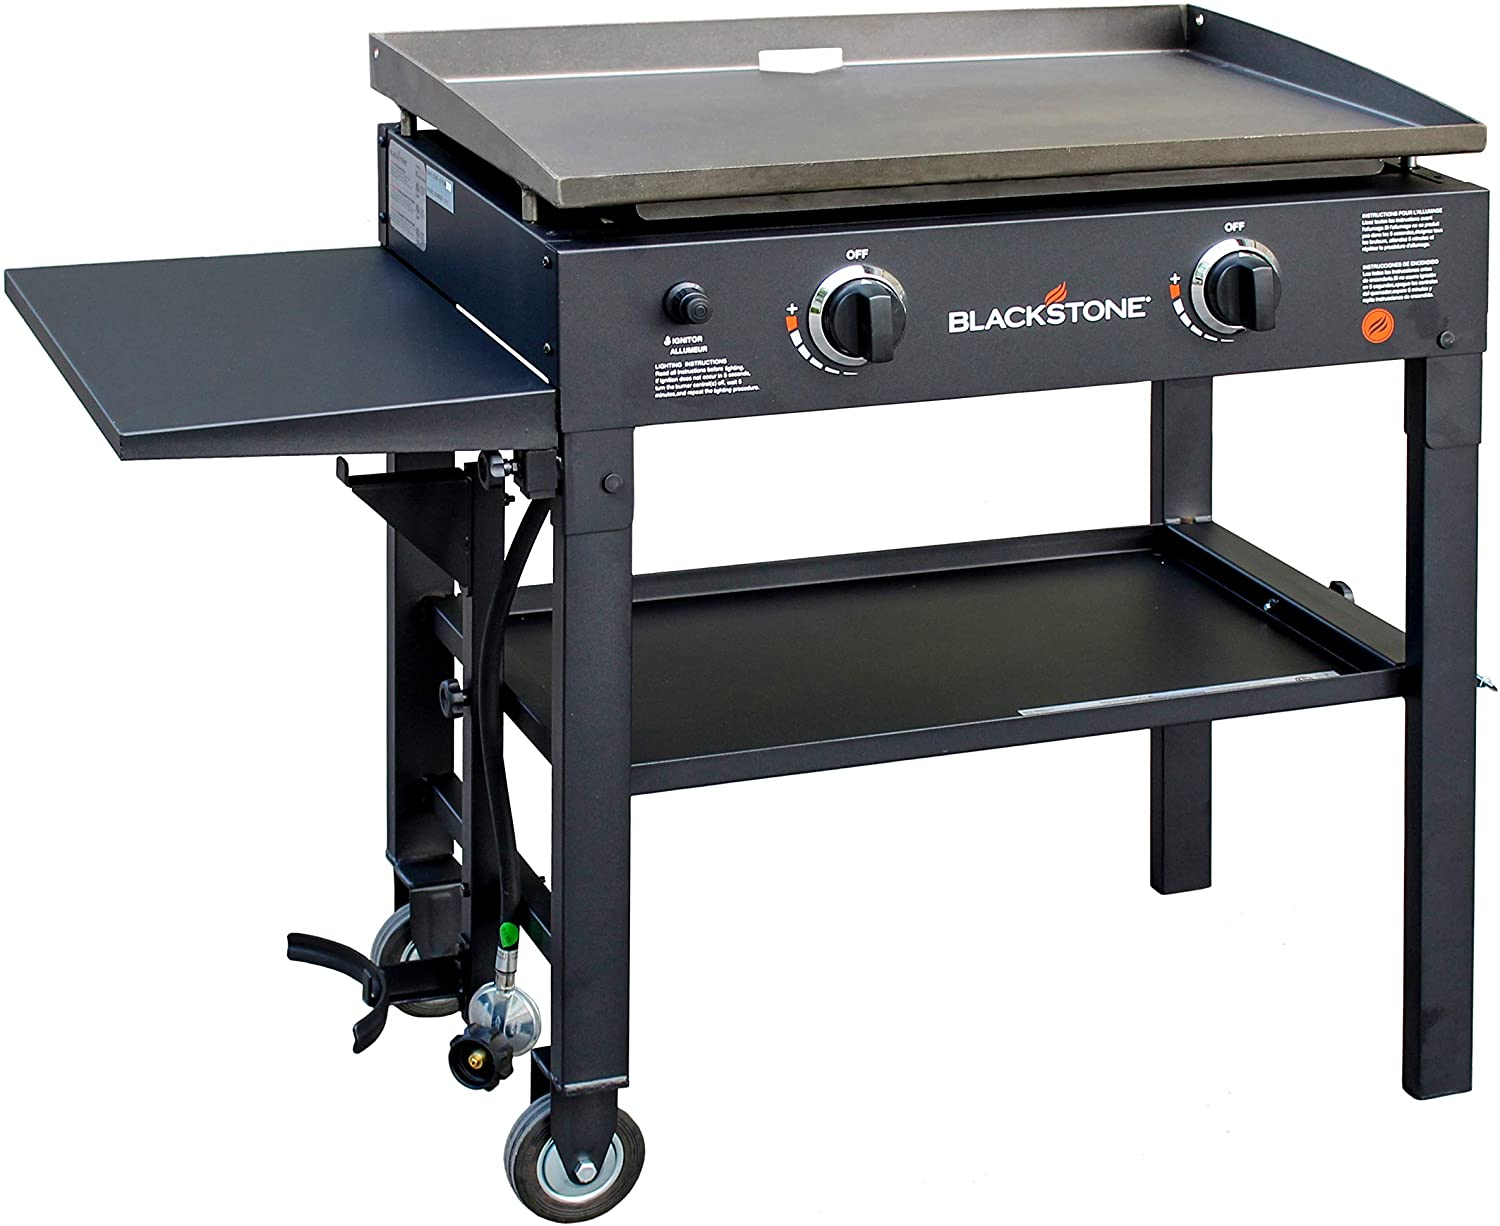 Blackstone Outdoor Flat Top Gas Grill Griddle Station